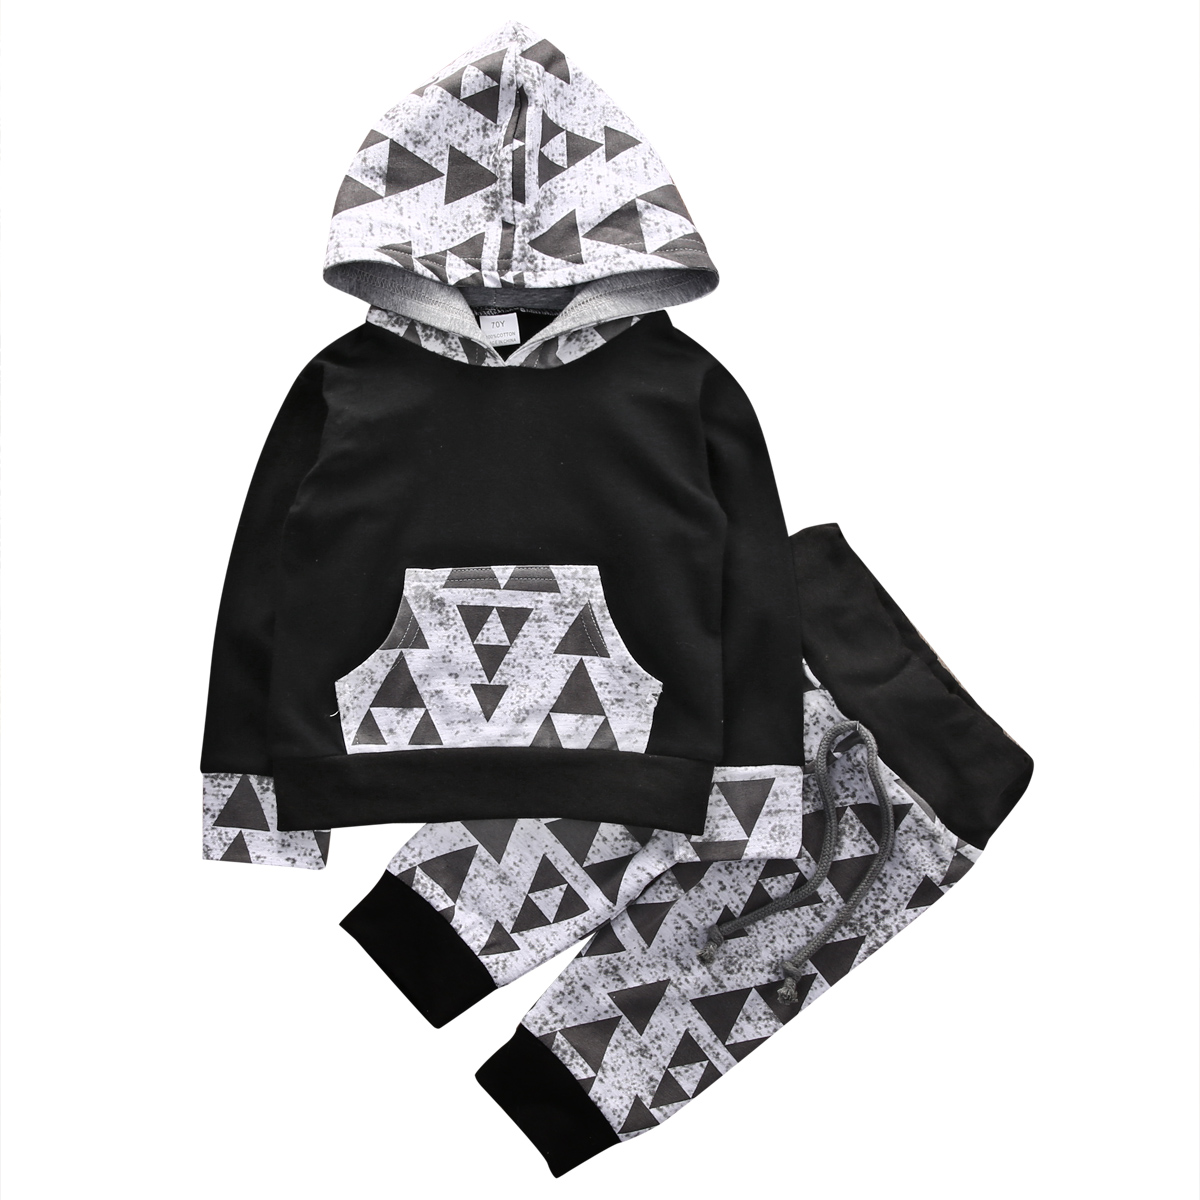 Newborn Toddler Kids Baby Boys Clothes Sets Outfits Long Sleeve Hooded Tops T-shirt Tops+Pants Clothes Set Clothing